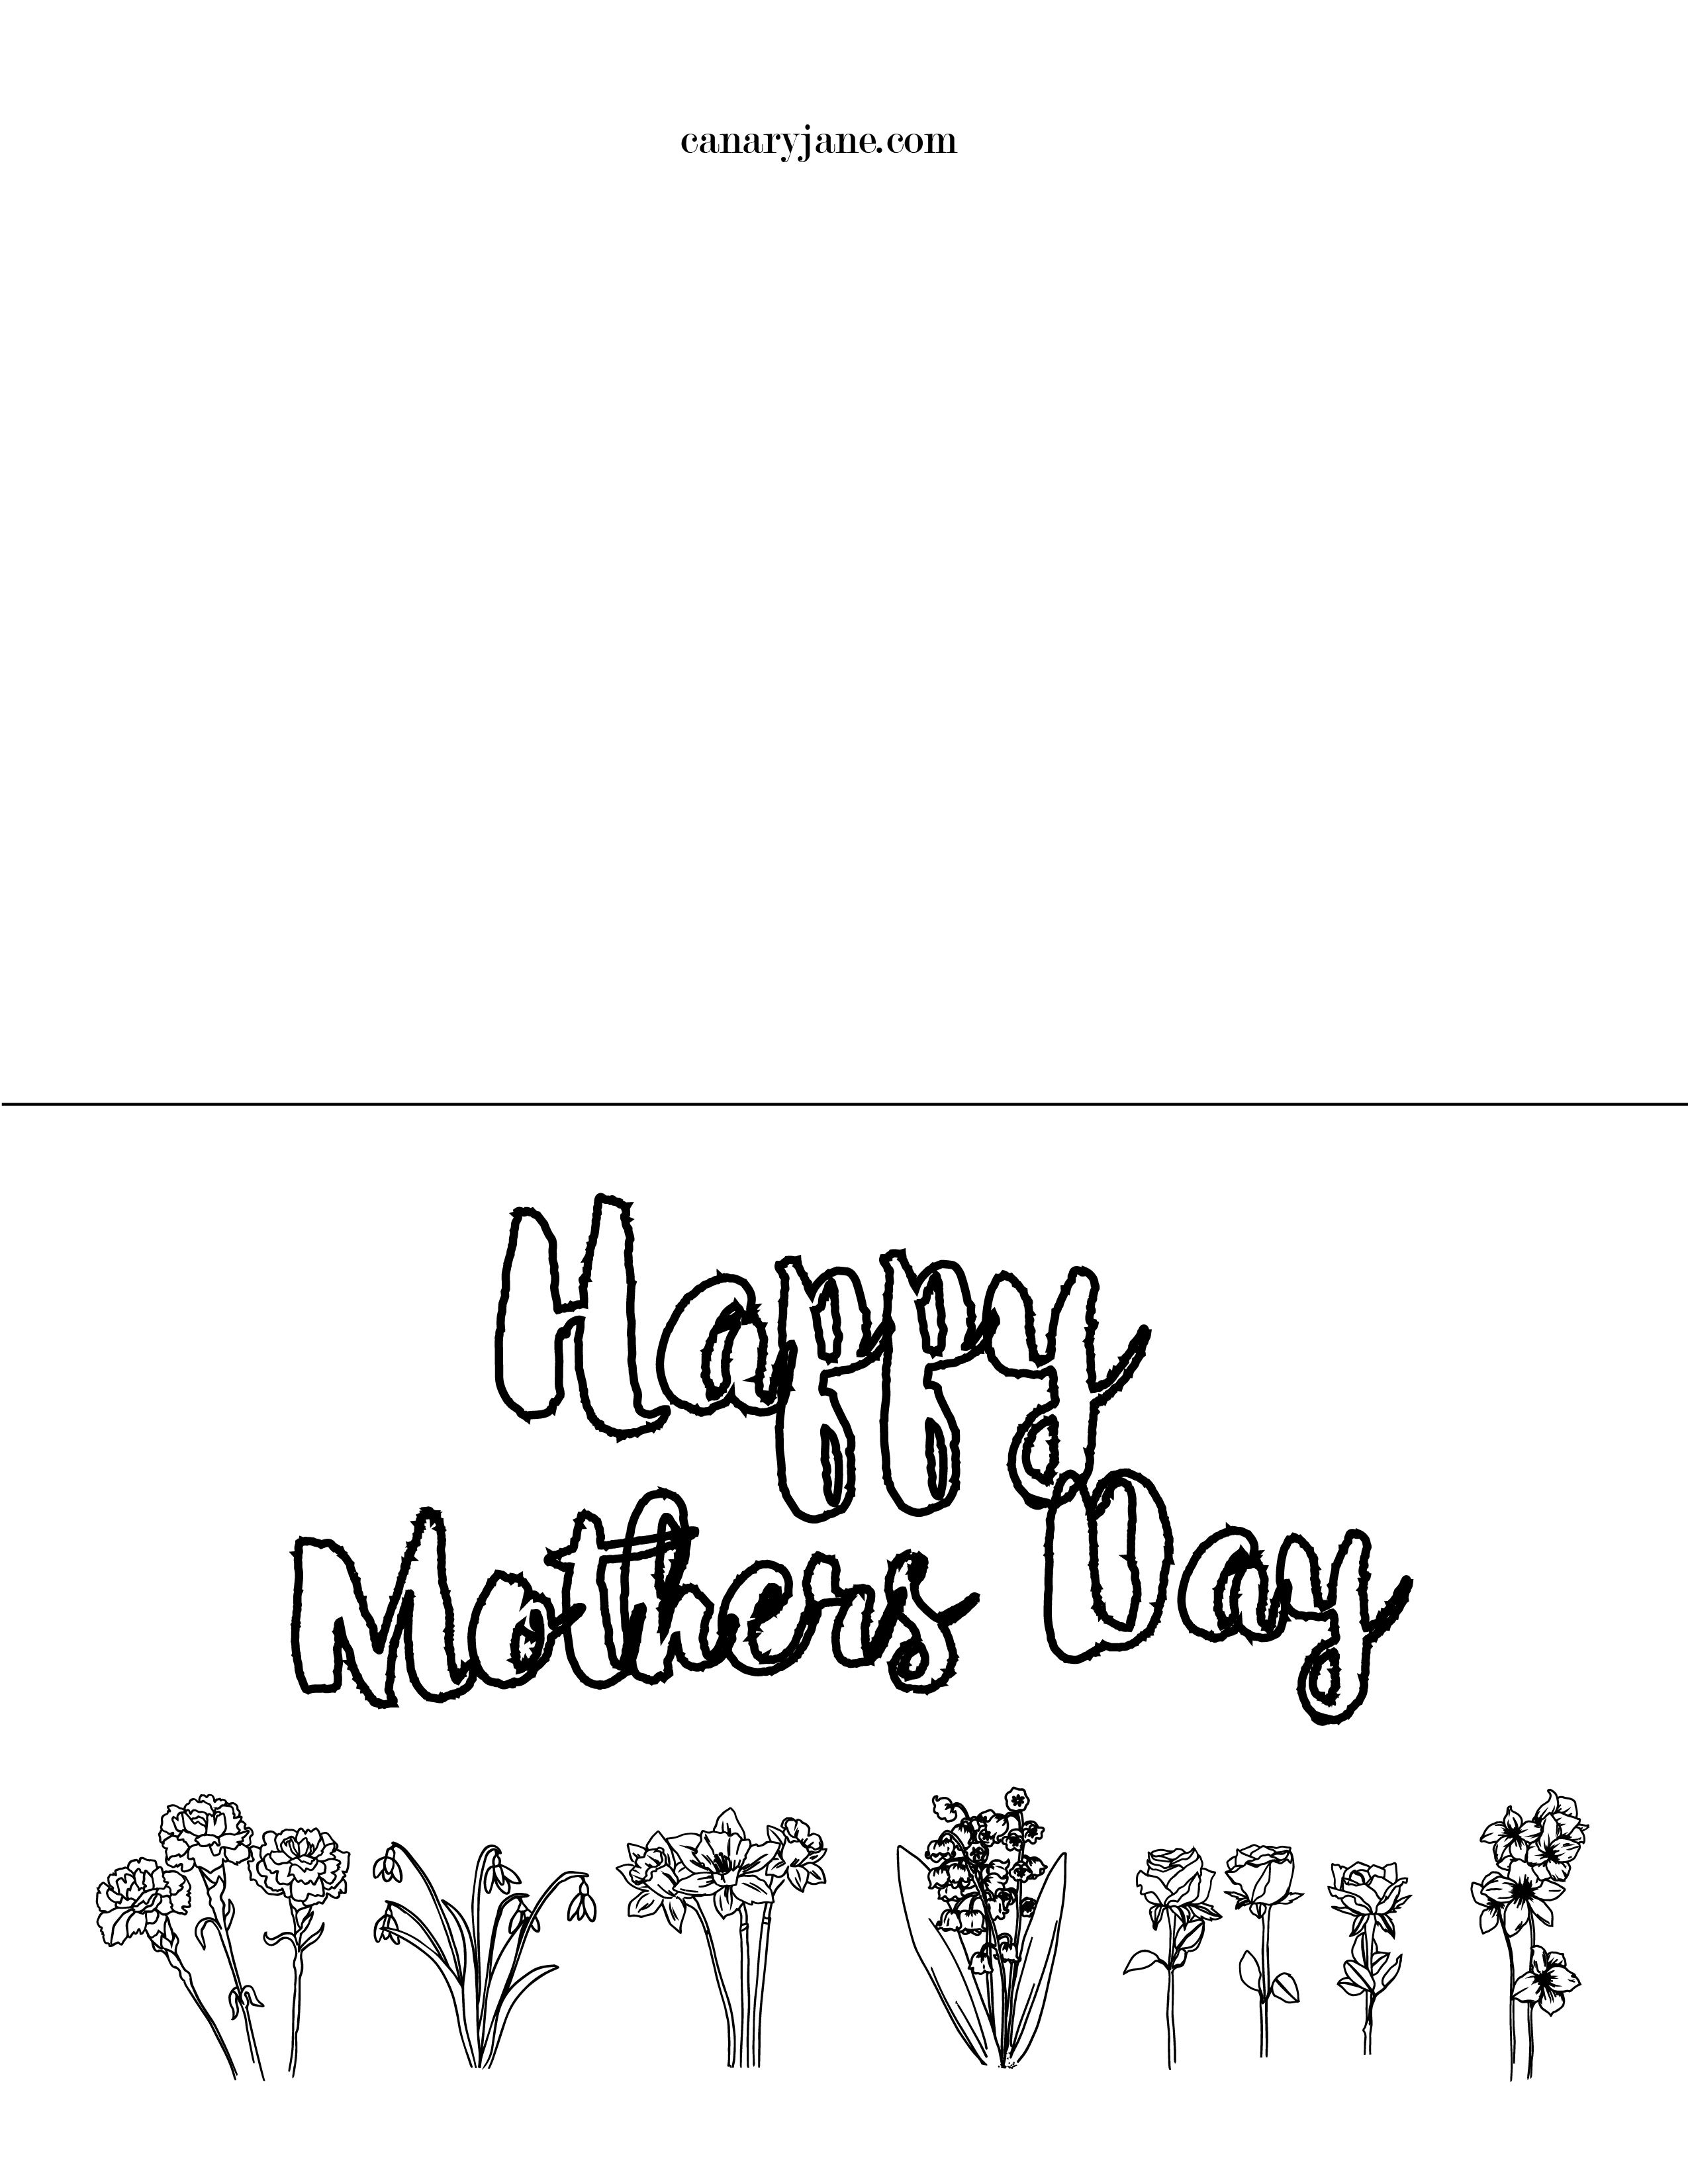 Grab these free printable coloring pages for Mothers Day and Grandma. I have different designs so you can print out the card version. There is also a worksheet that shares all you love about mom or draw a picture for Grandma.